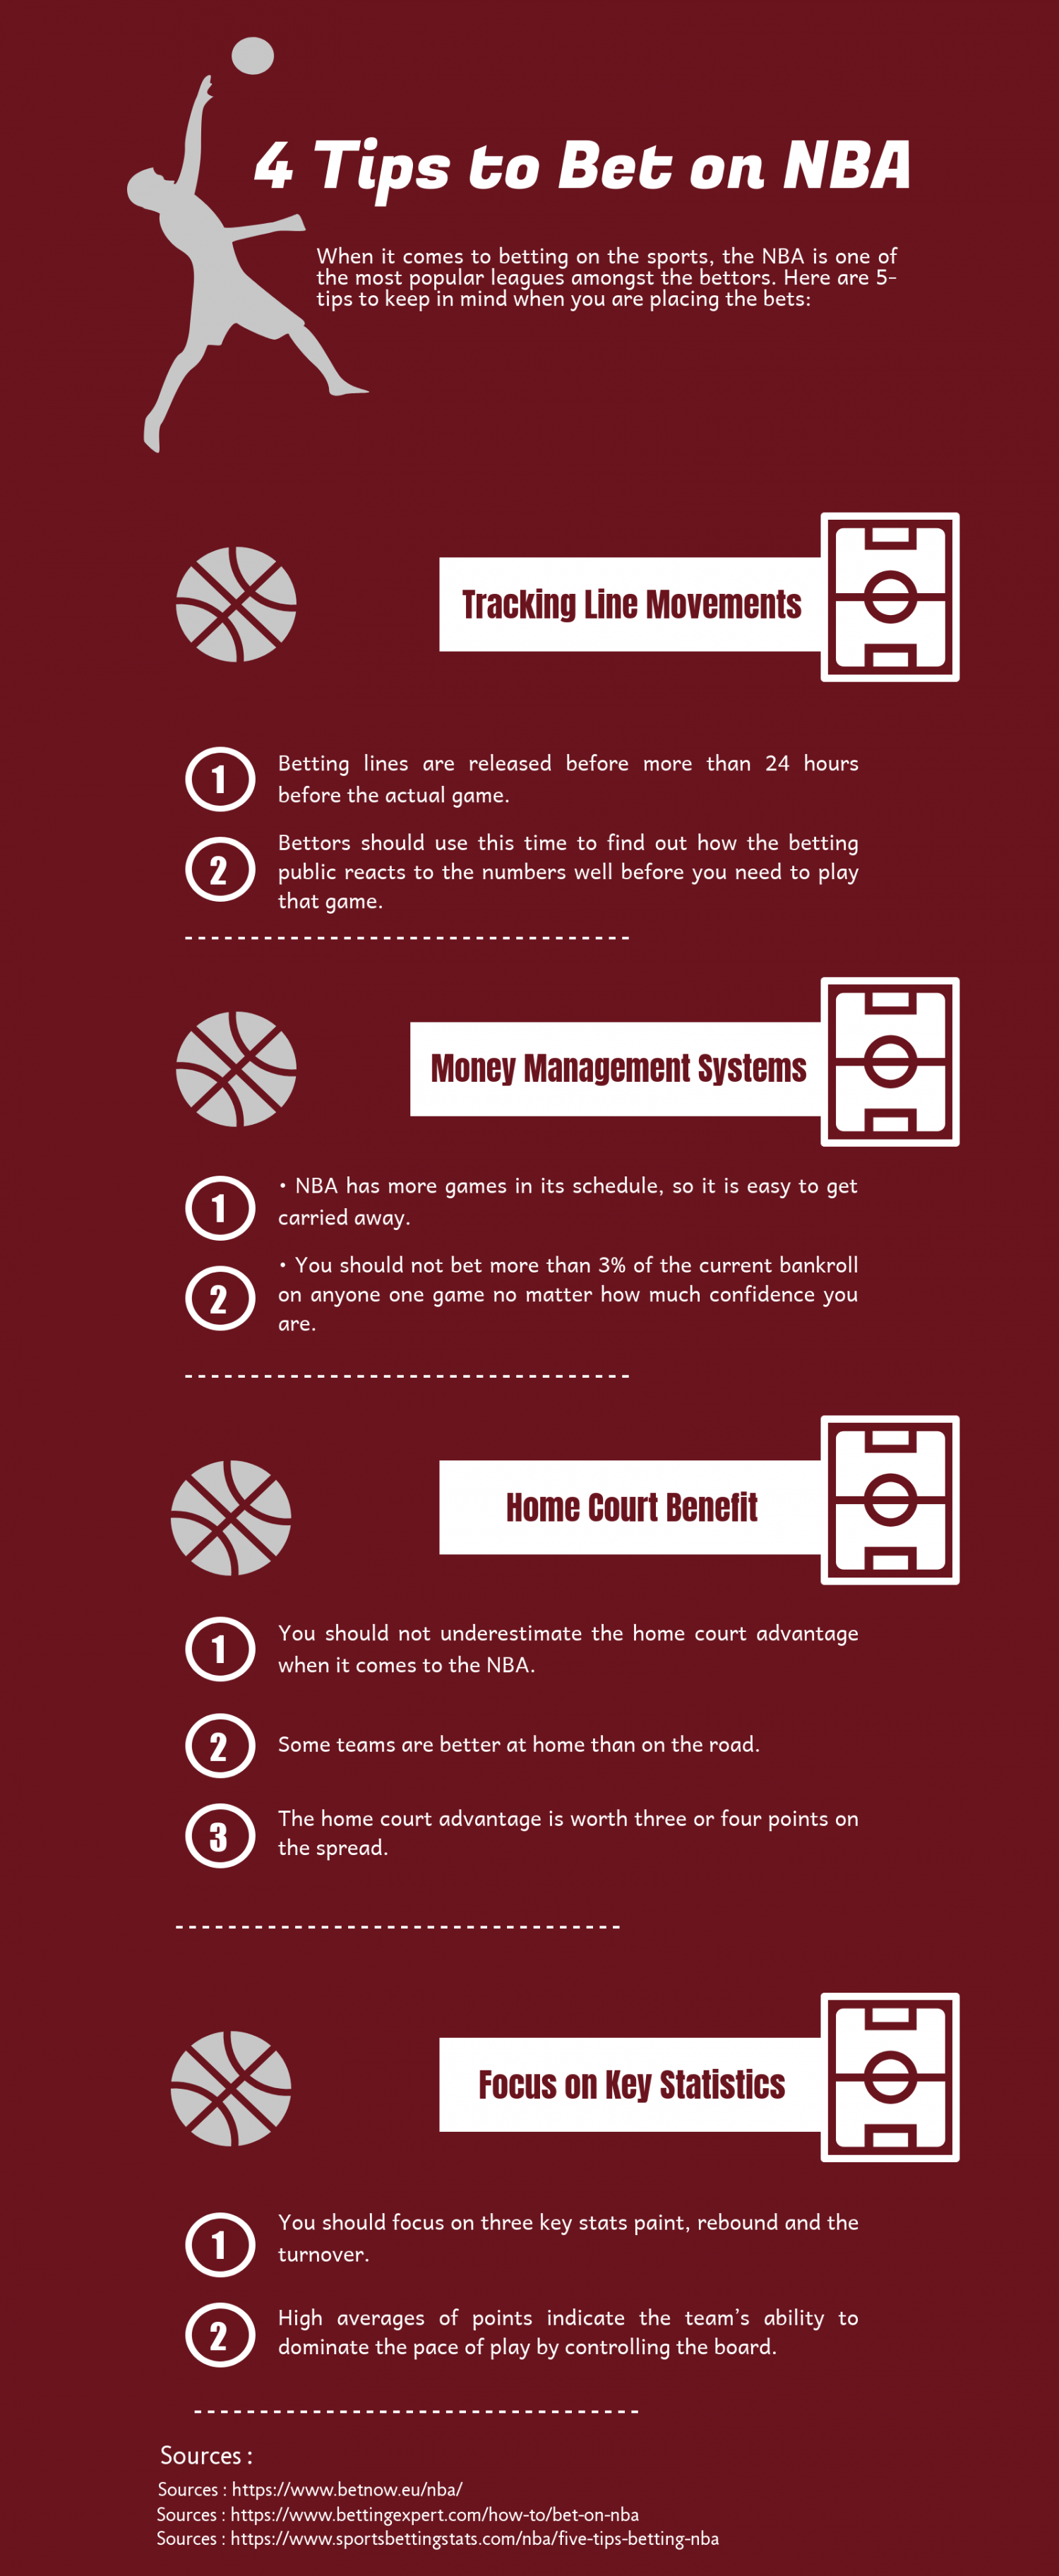 Tips to Bet on NBA